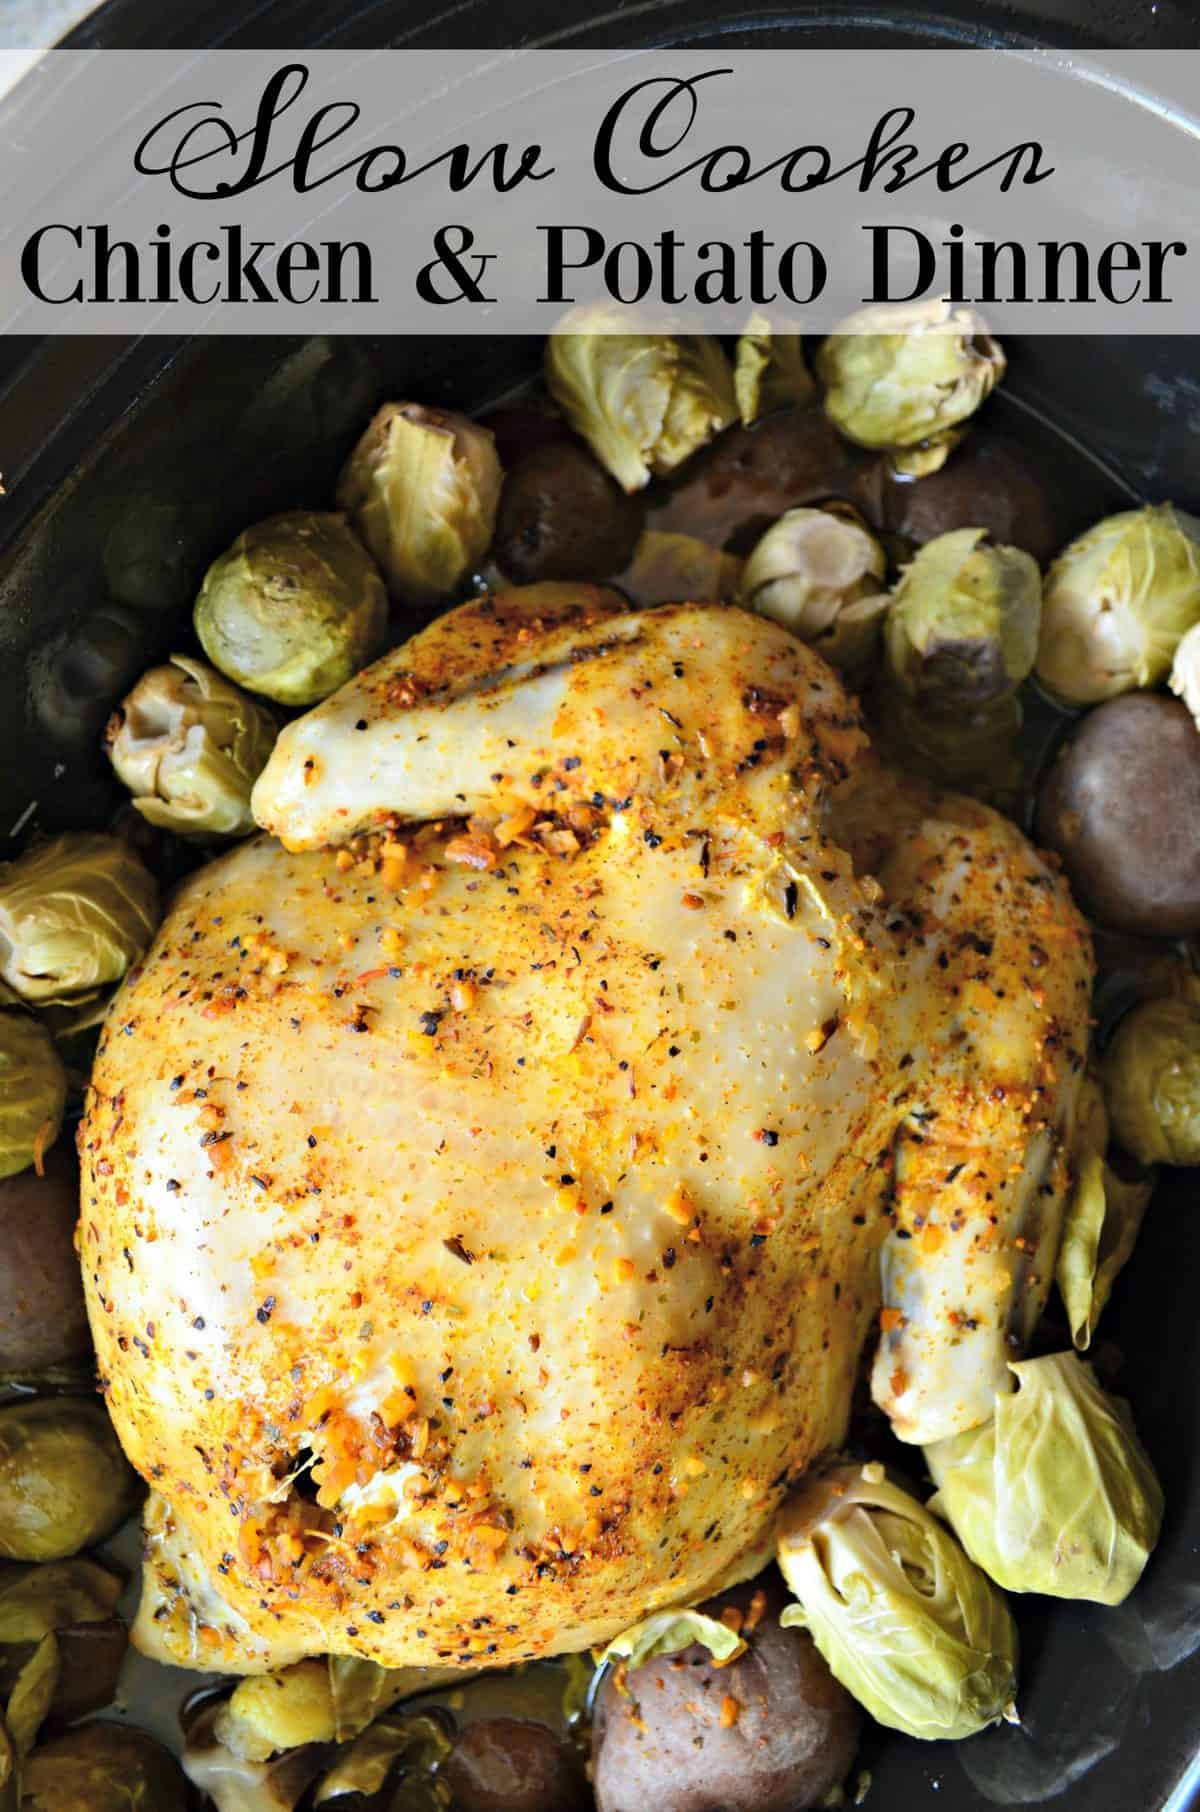 top view of Golden browned chicken topped with herbs in slow cooker with potatoes and brussels sprouts with title text.